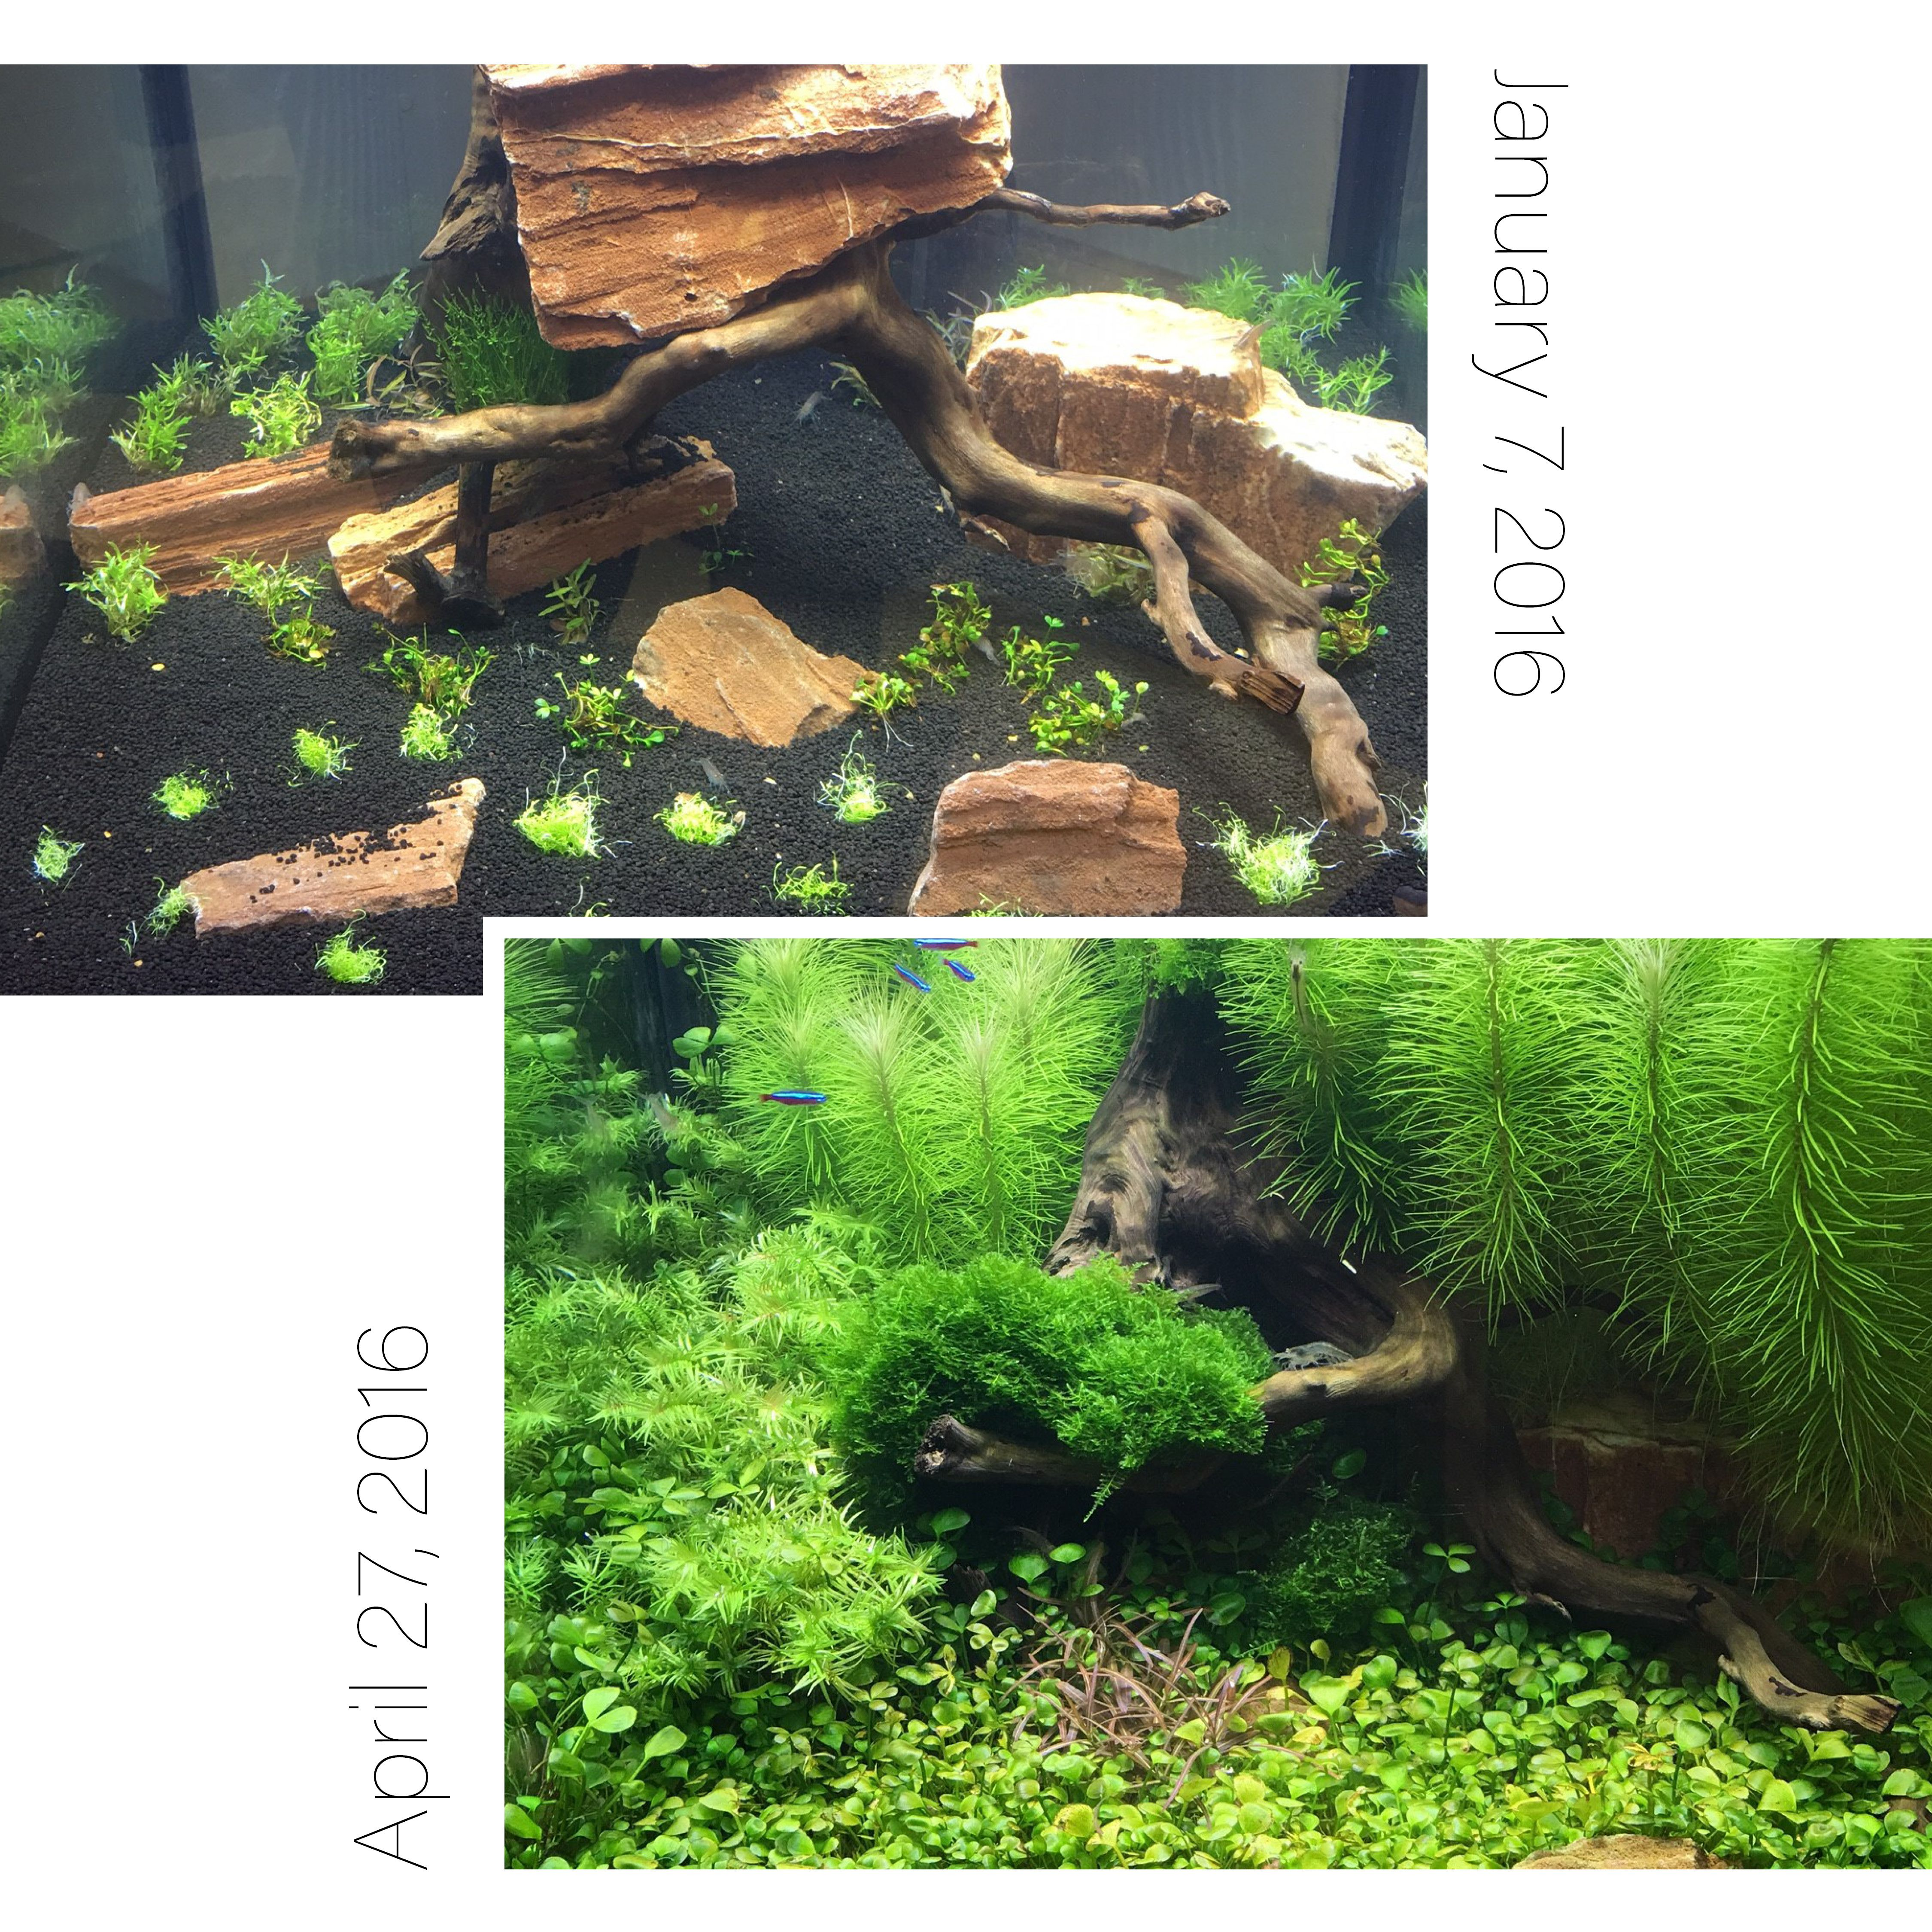 We recently started carrying Tropica Tissue Culture Plants and set up a tank in our front office. We've had fantastic growth in just over 3 months.